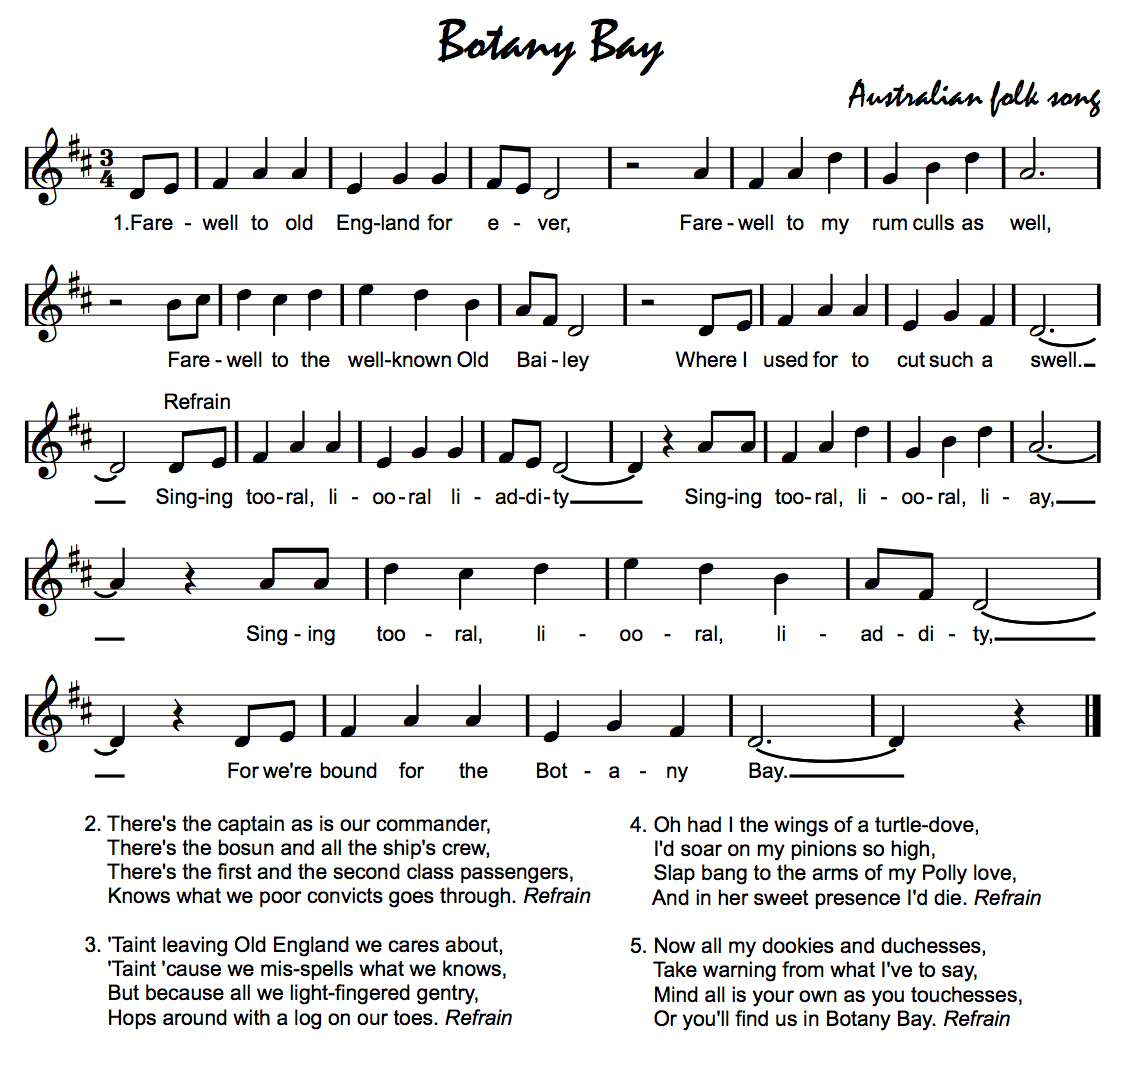 Do Re Mi Lyrics Sheet Music: Beth's Music Notes: Botany Bay - Australia